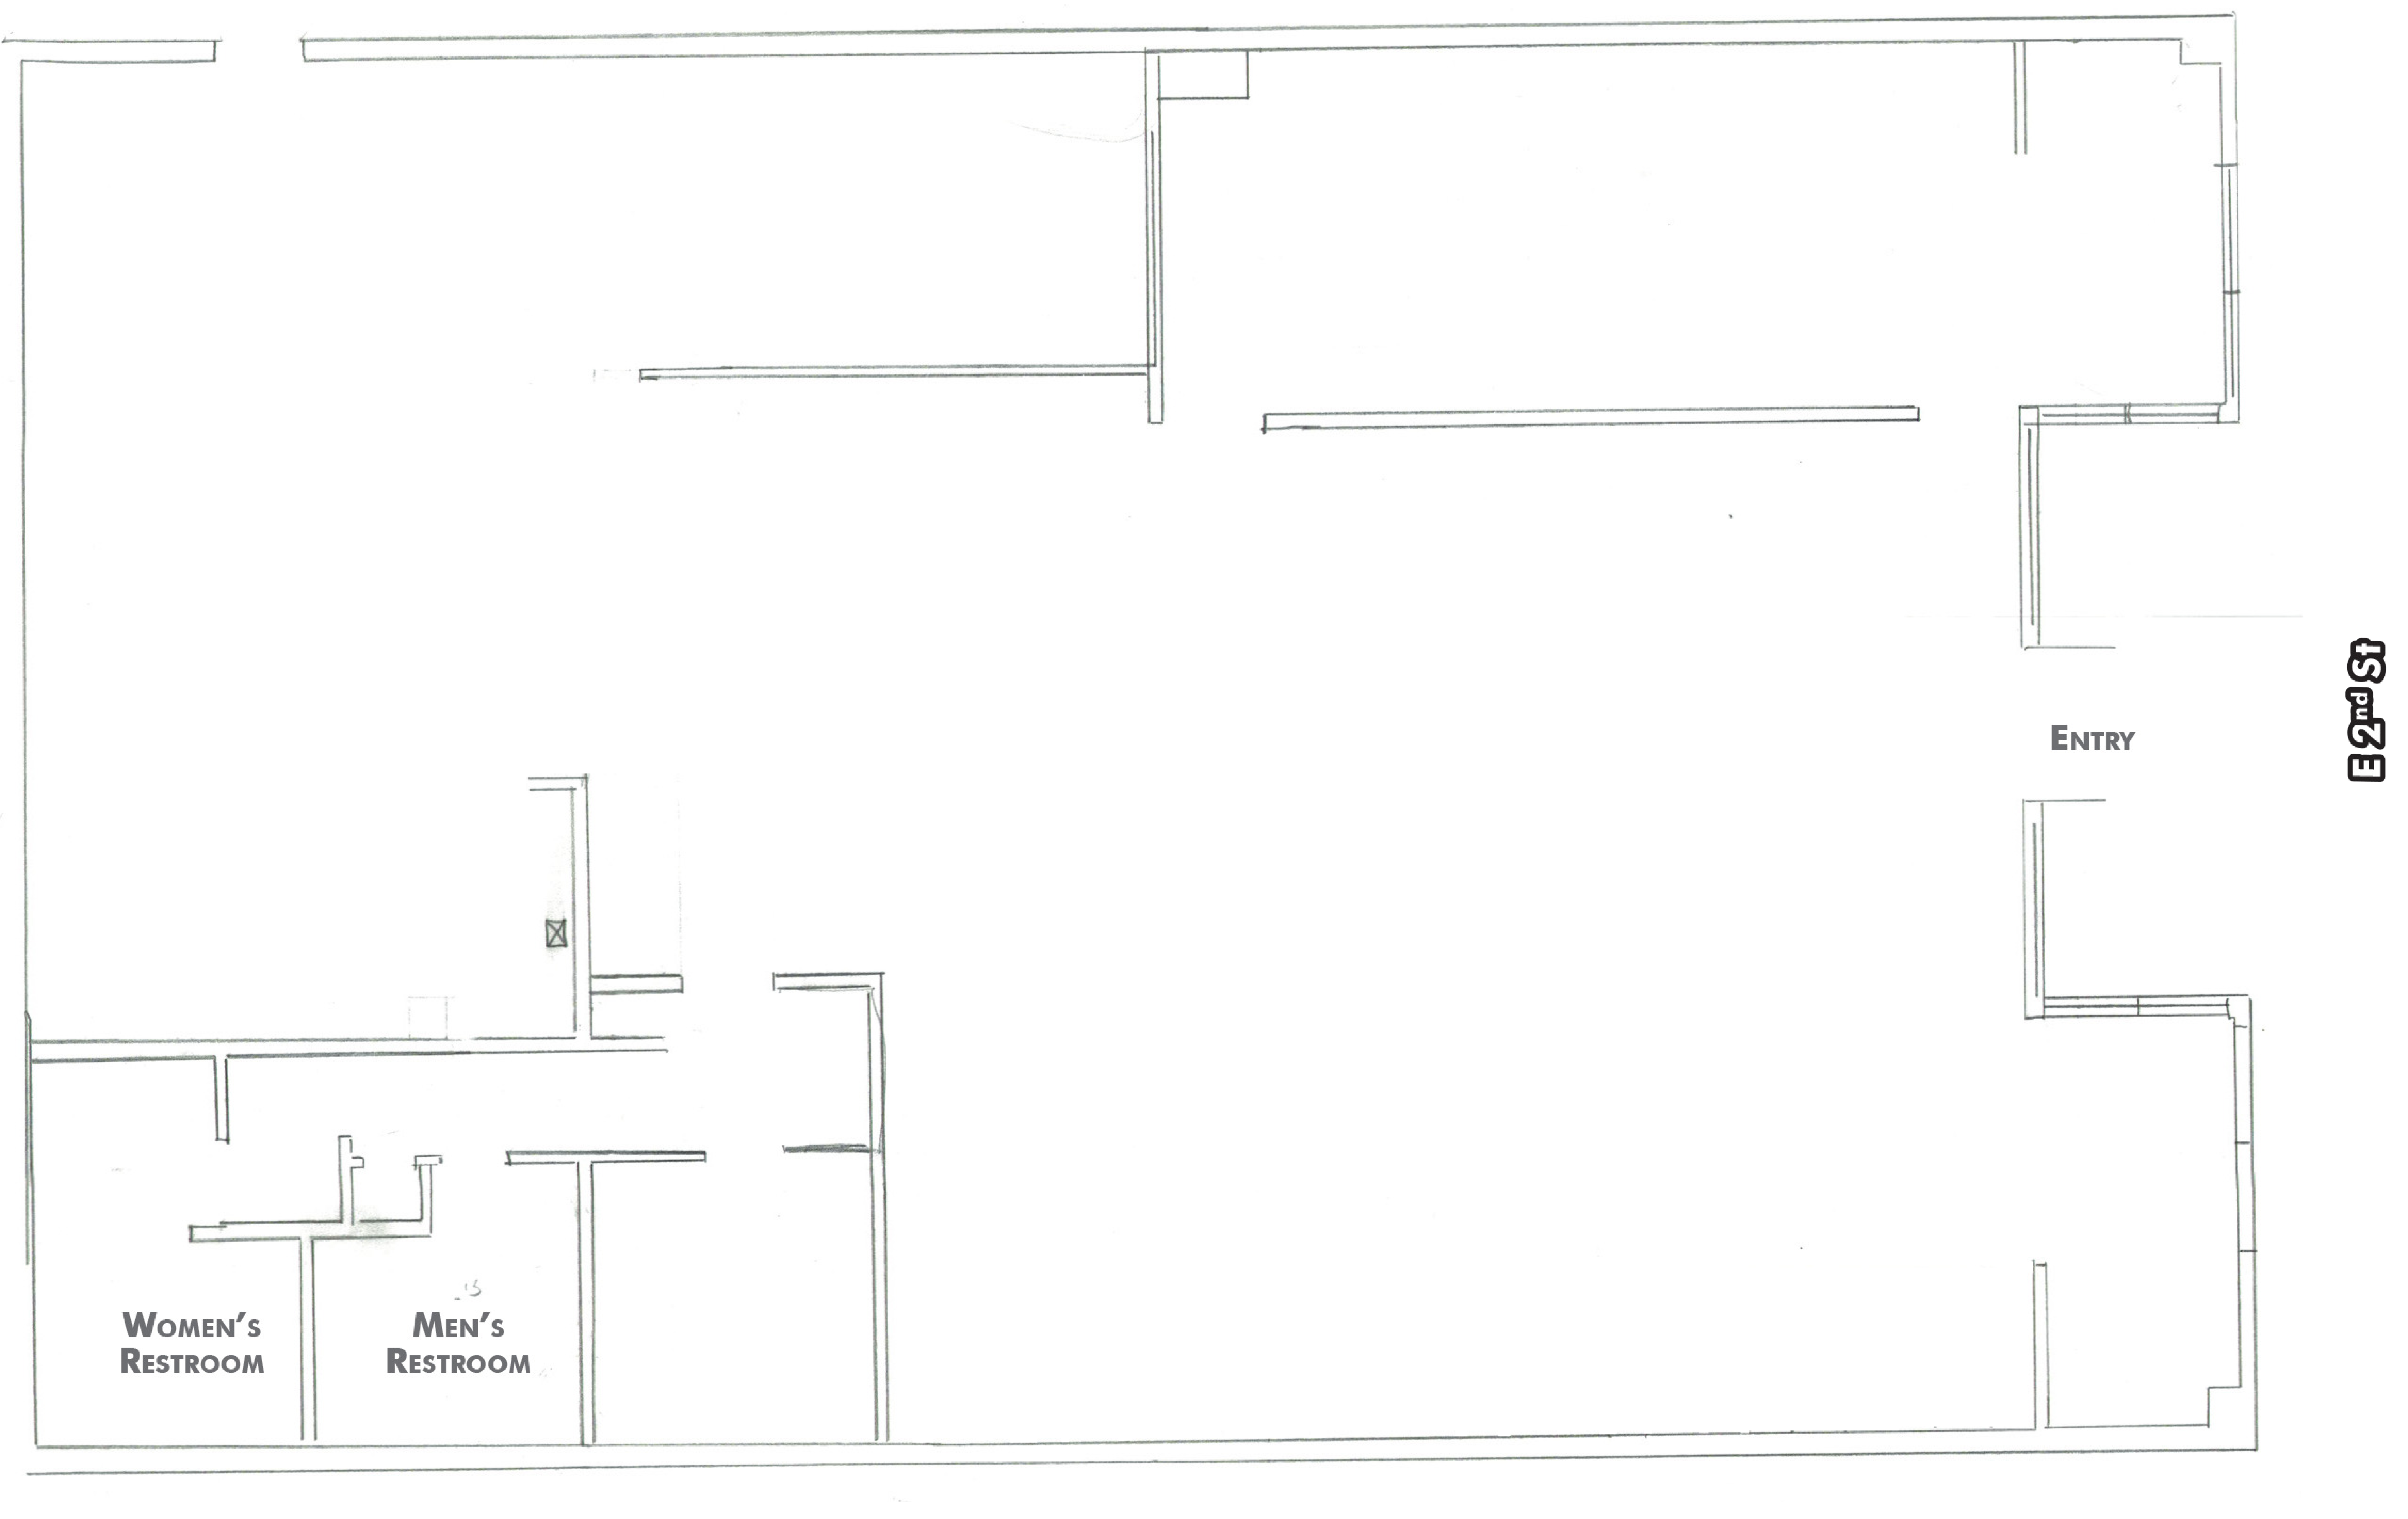 Downtown Chico Restaurant Space: site plan